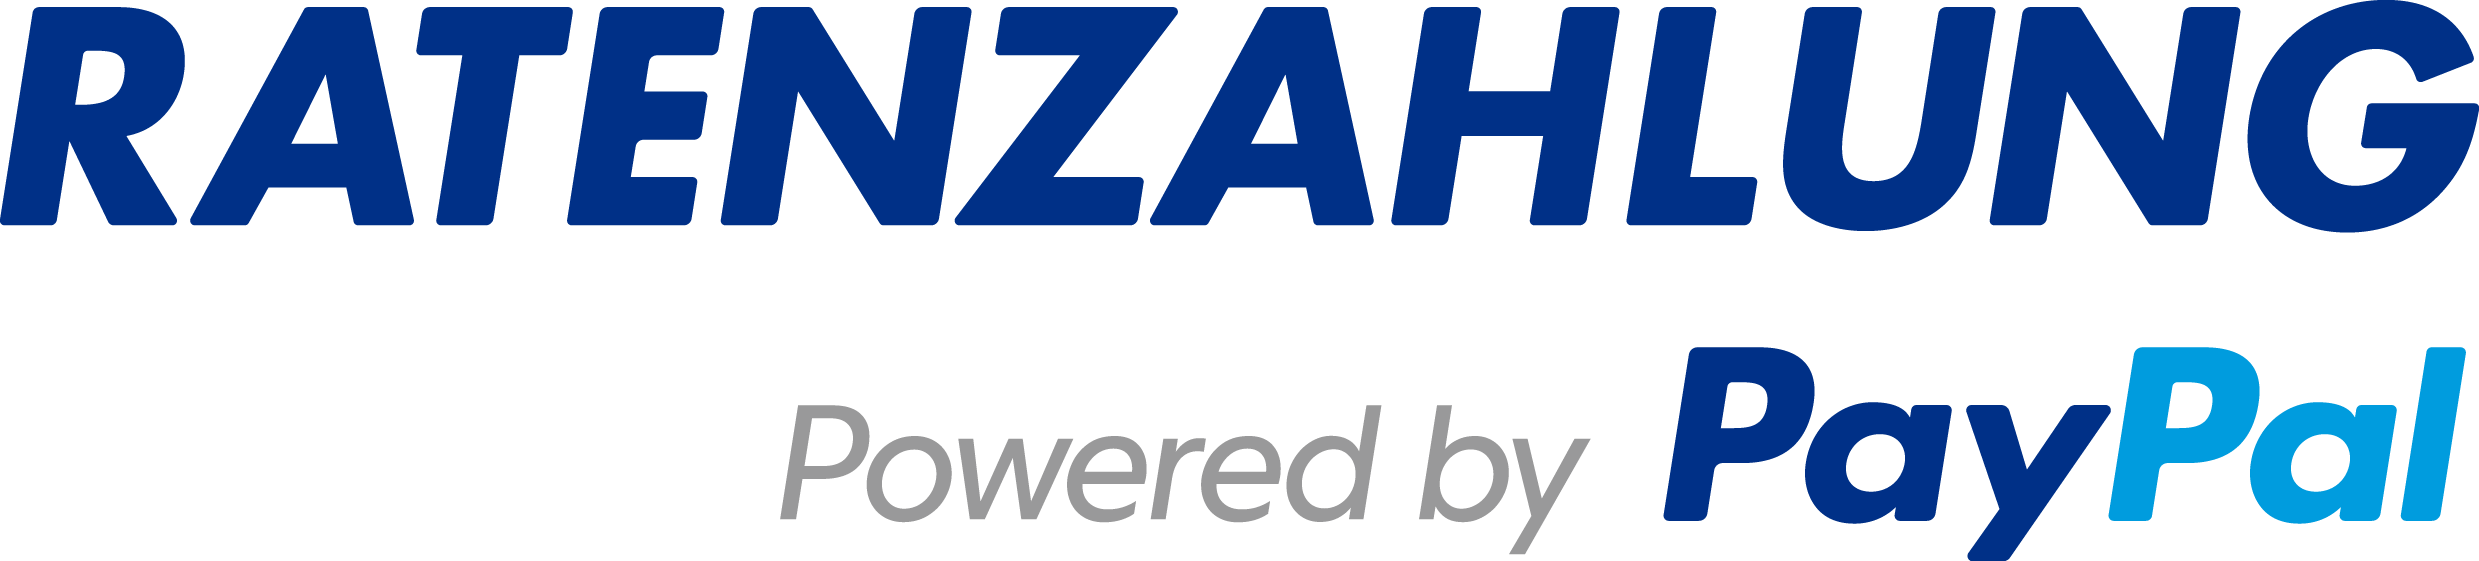 Paypal ratenzahlung logo